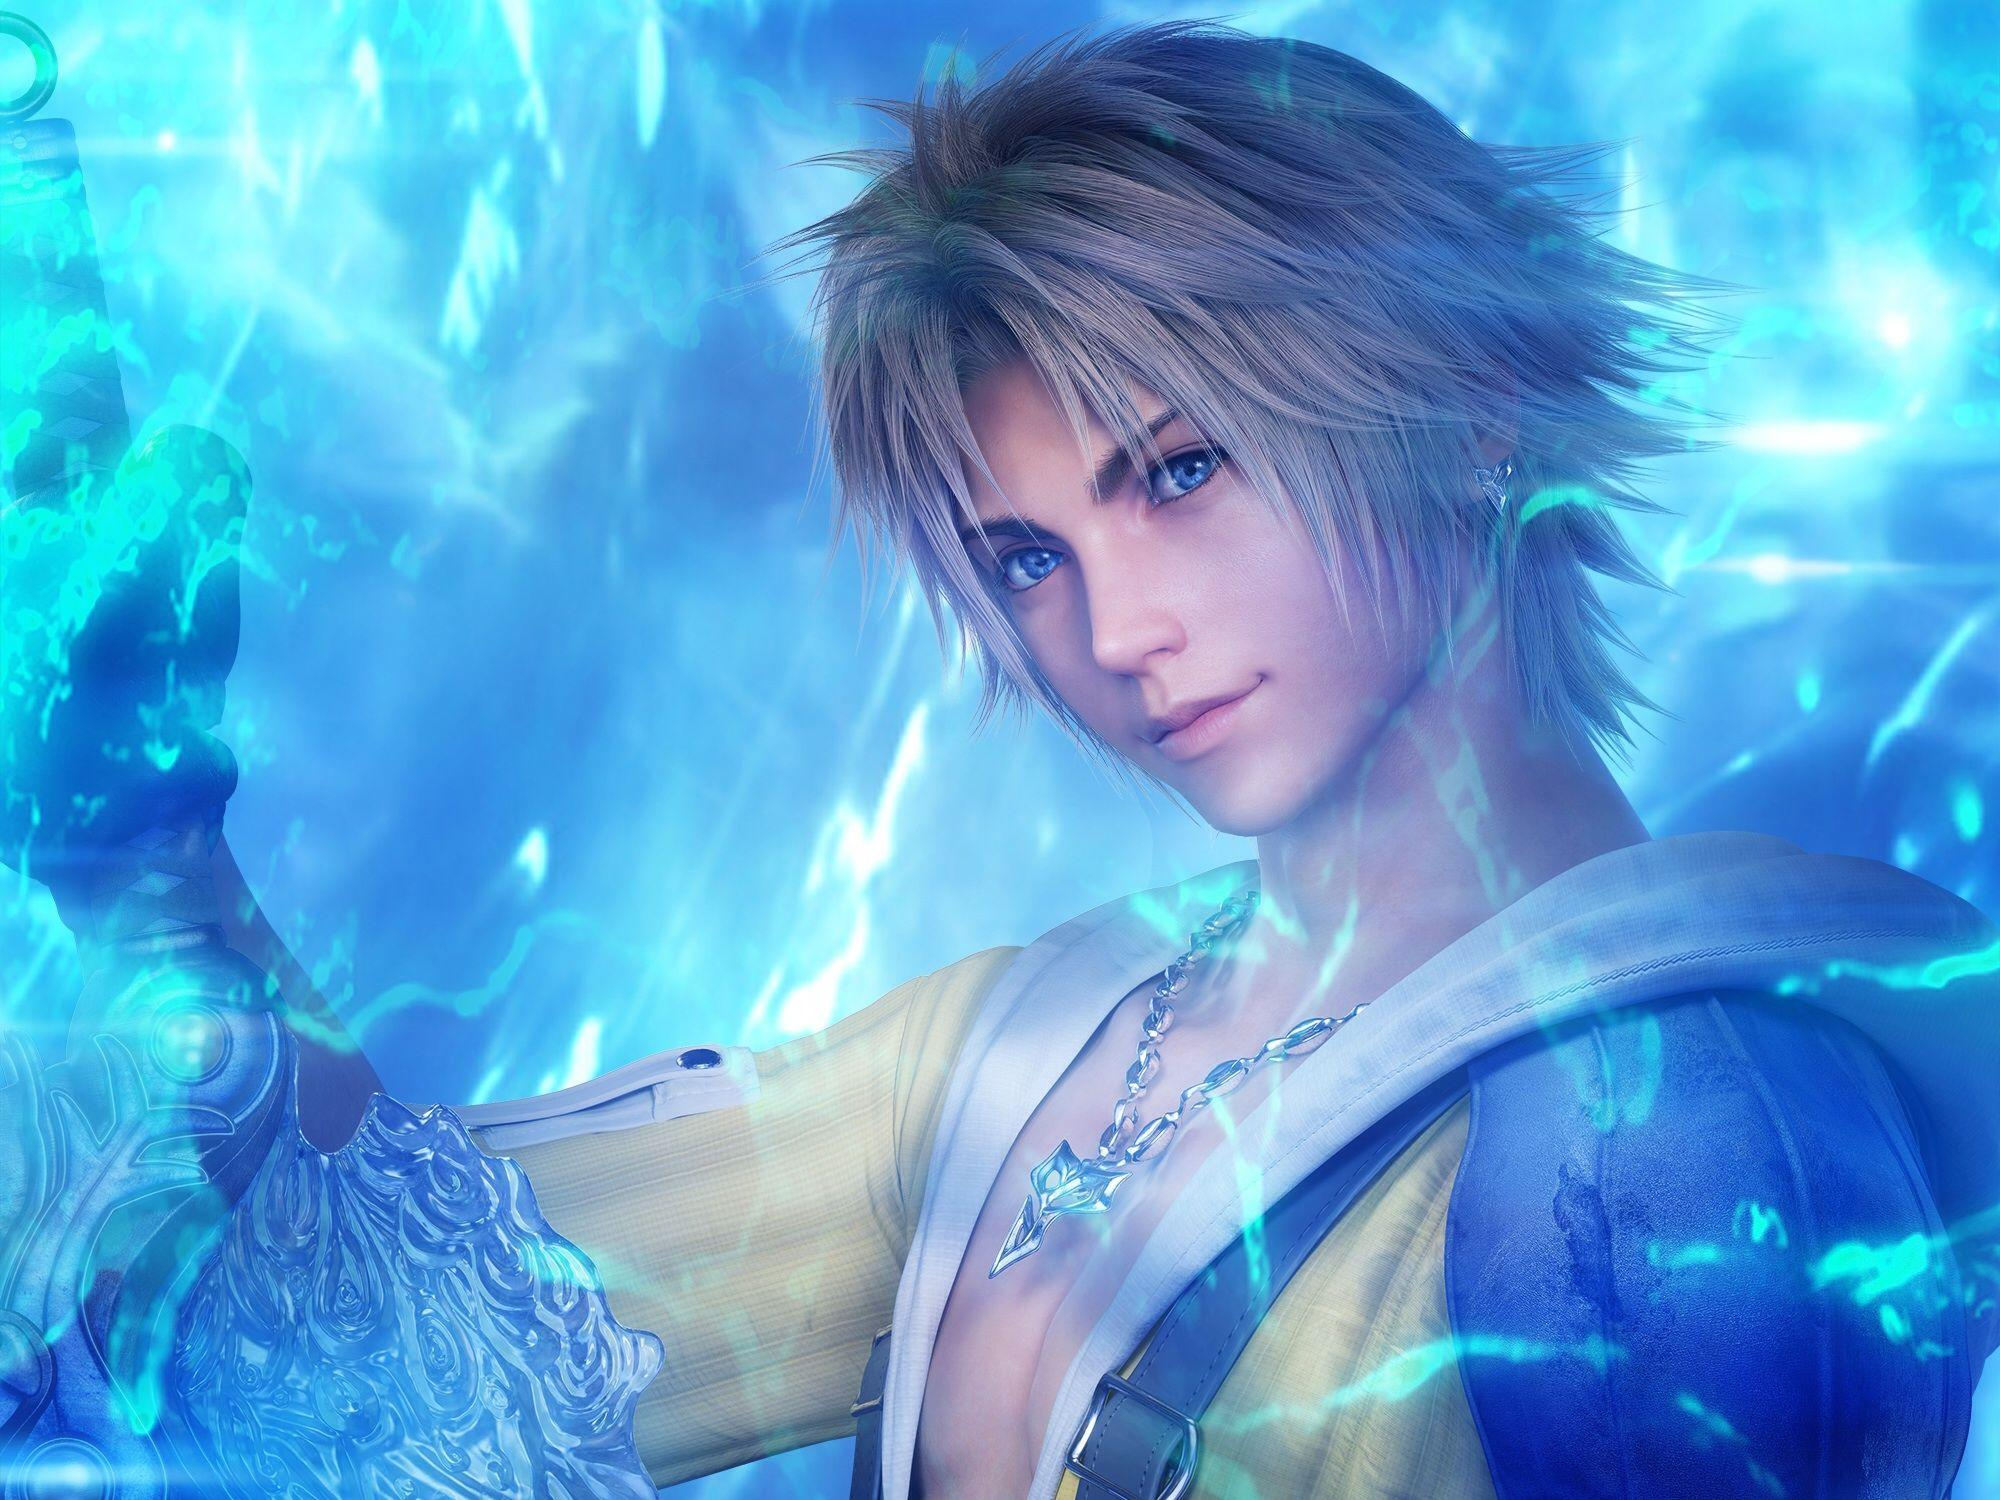 final fantasy x hd wallpapers tidus - wallpaper cave